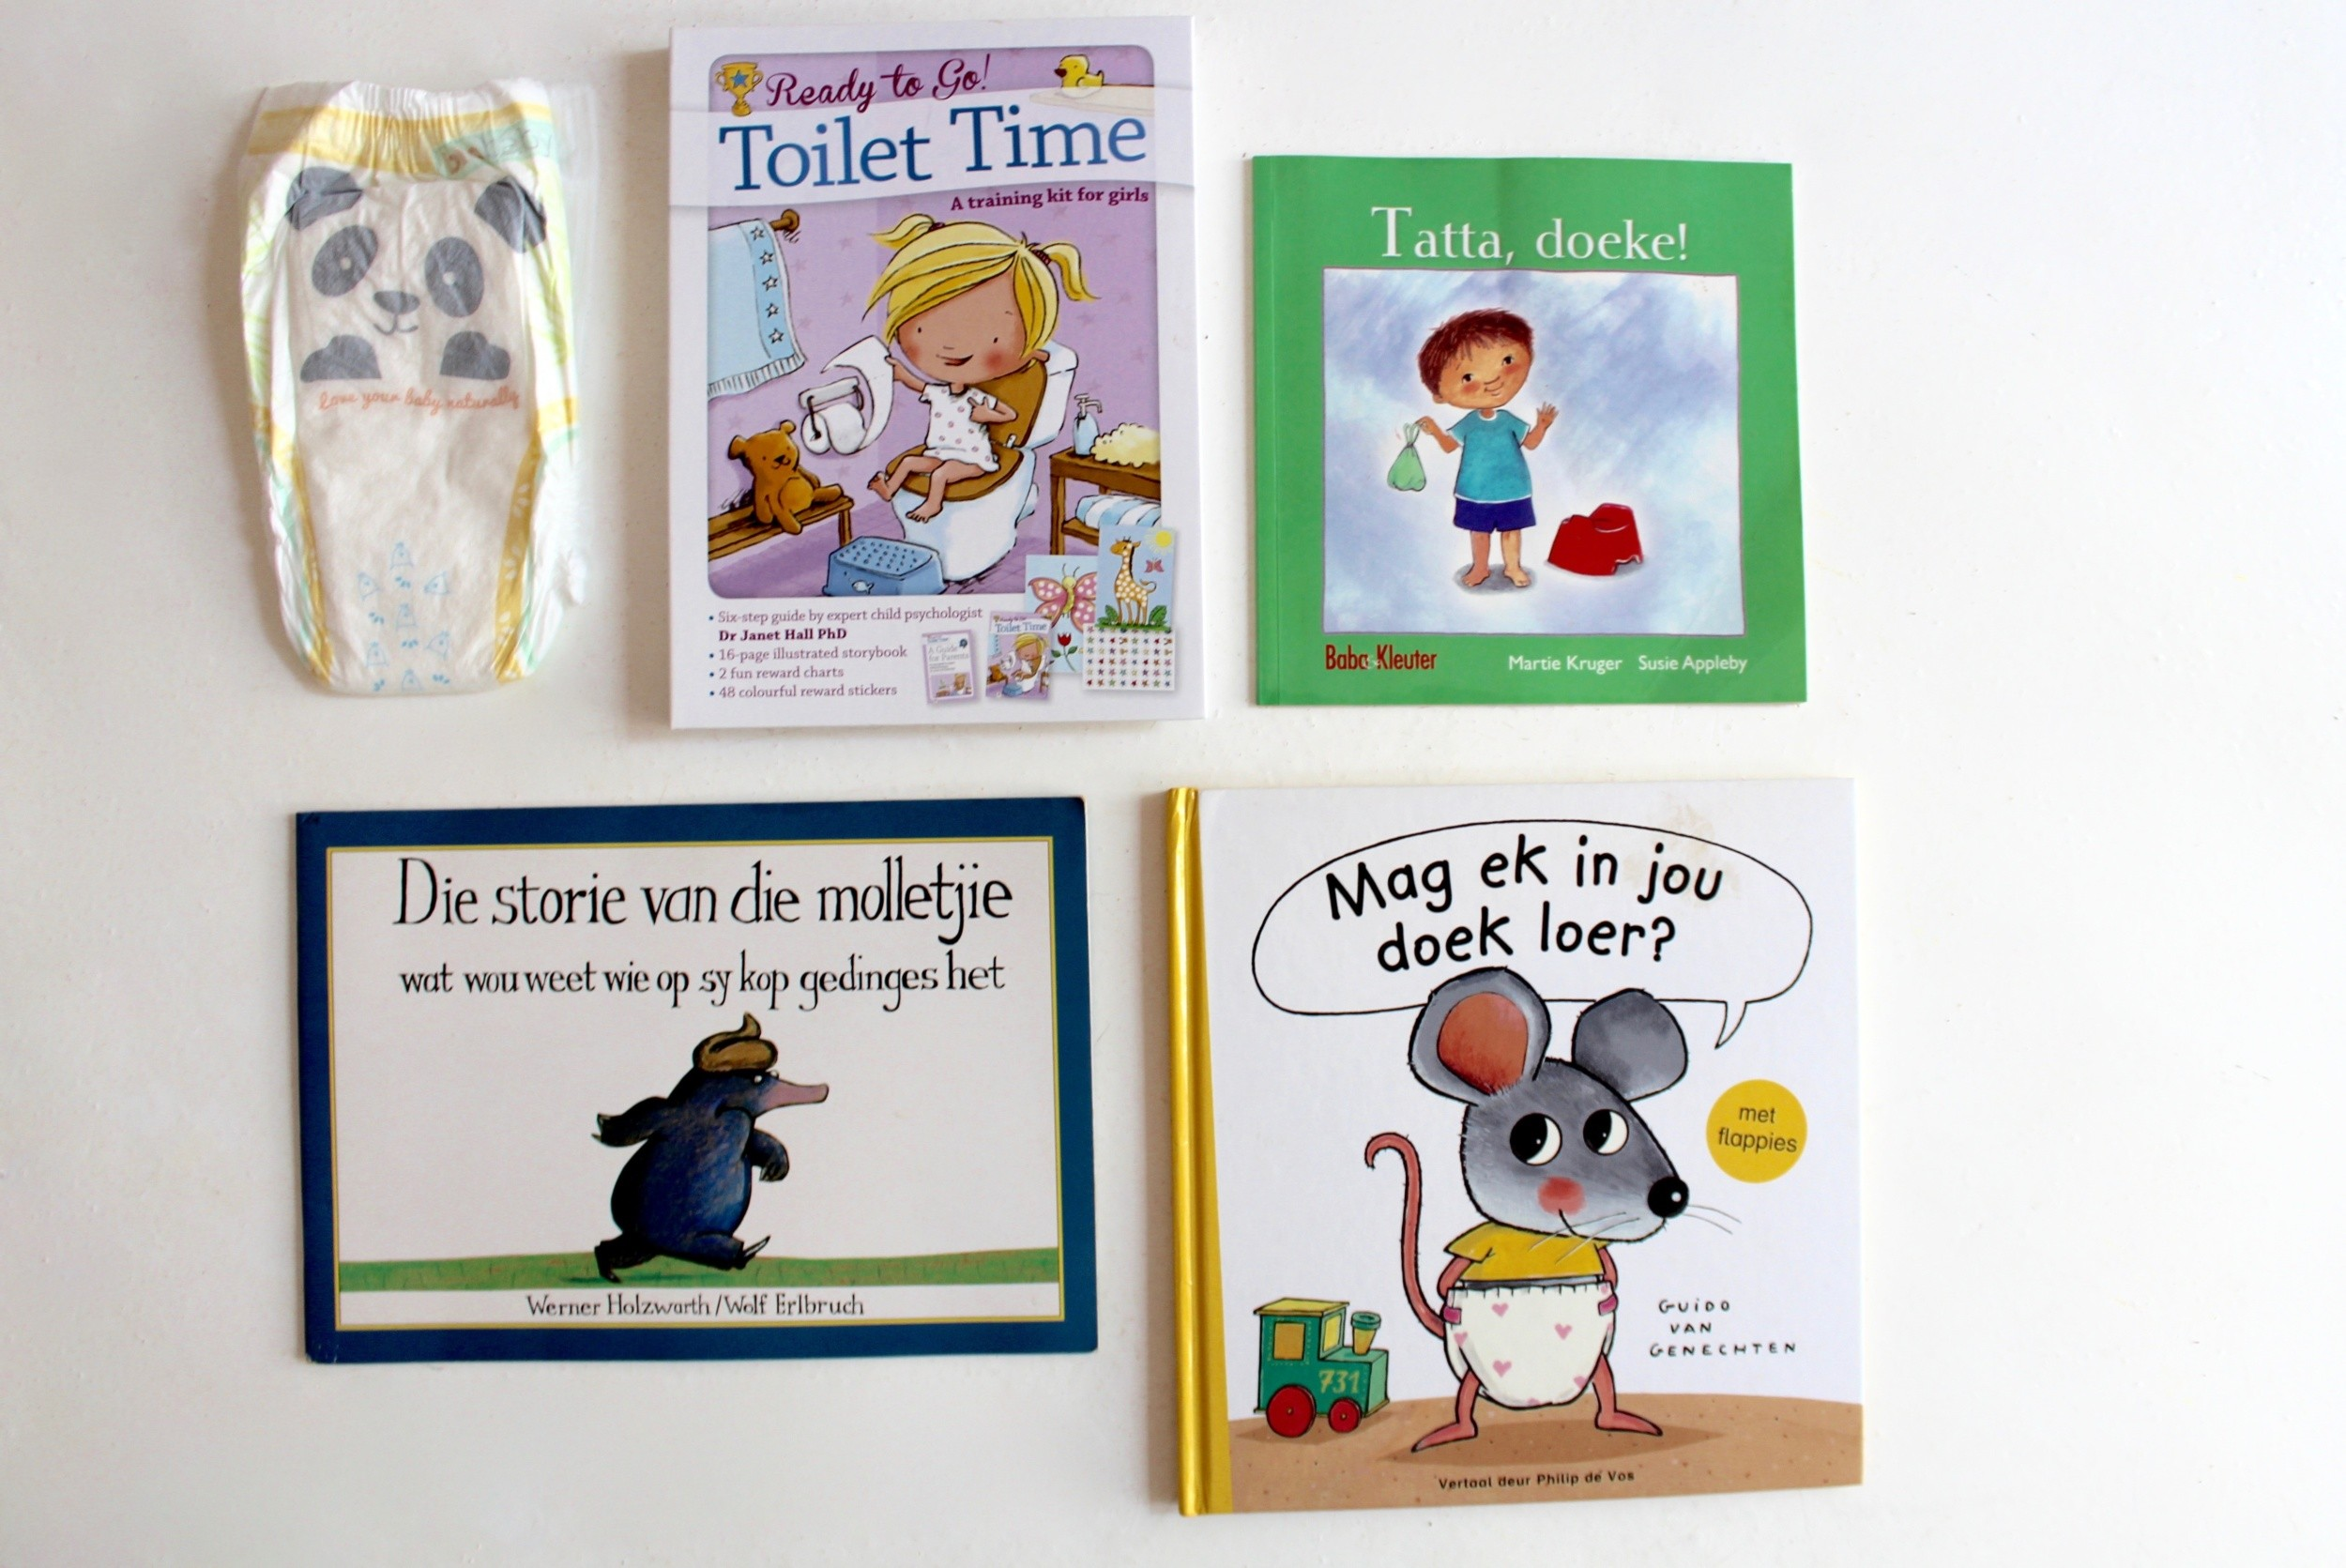 Potty Training, Book club: Great Potty Training stories for toddlers